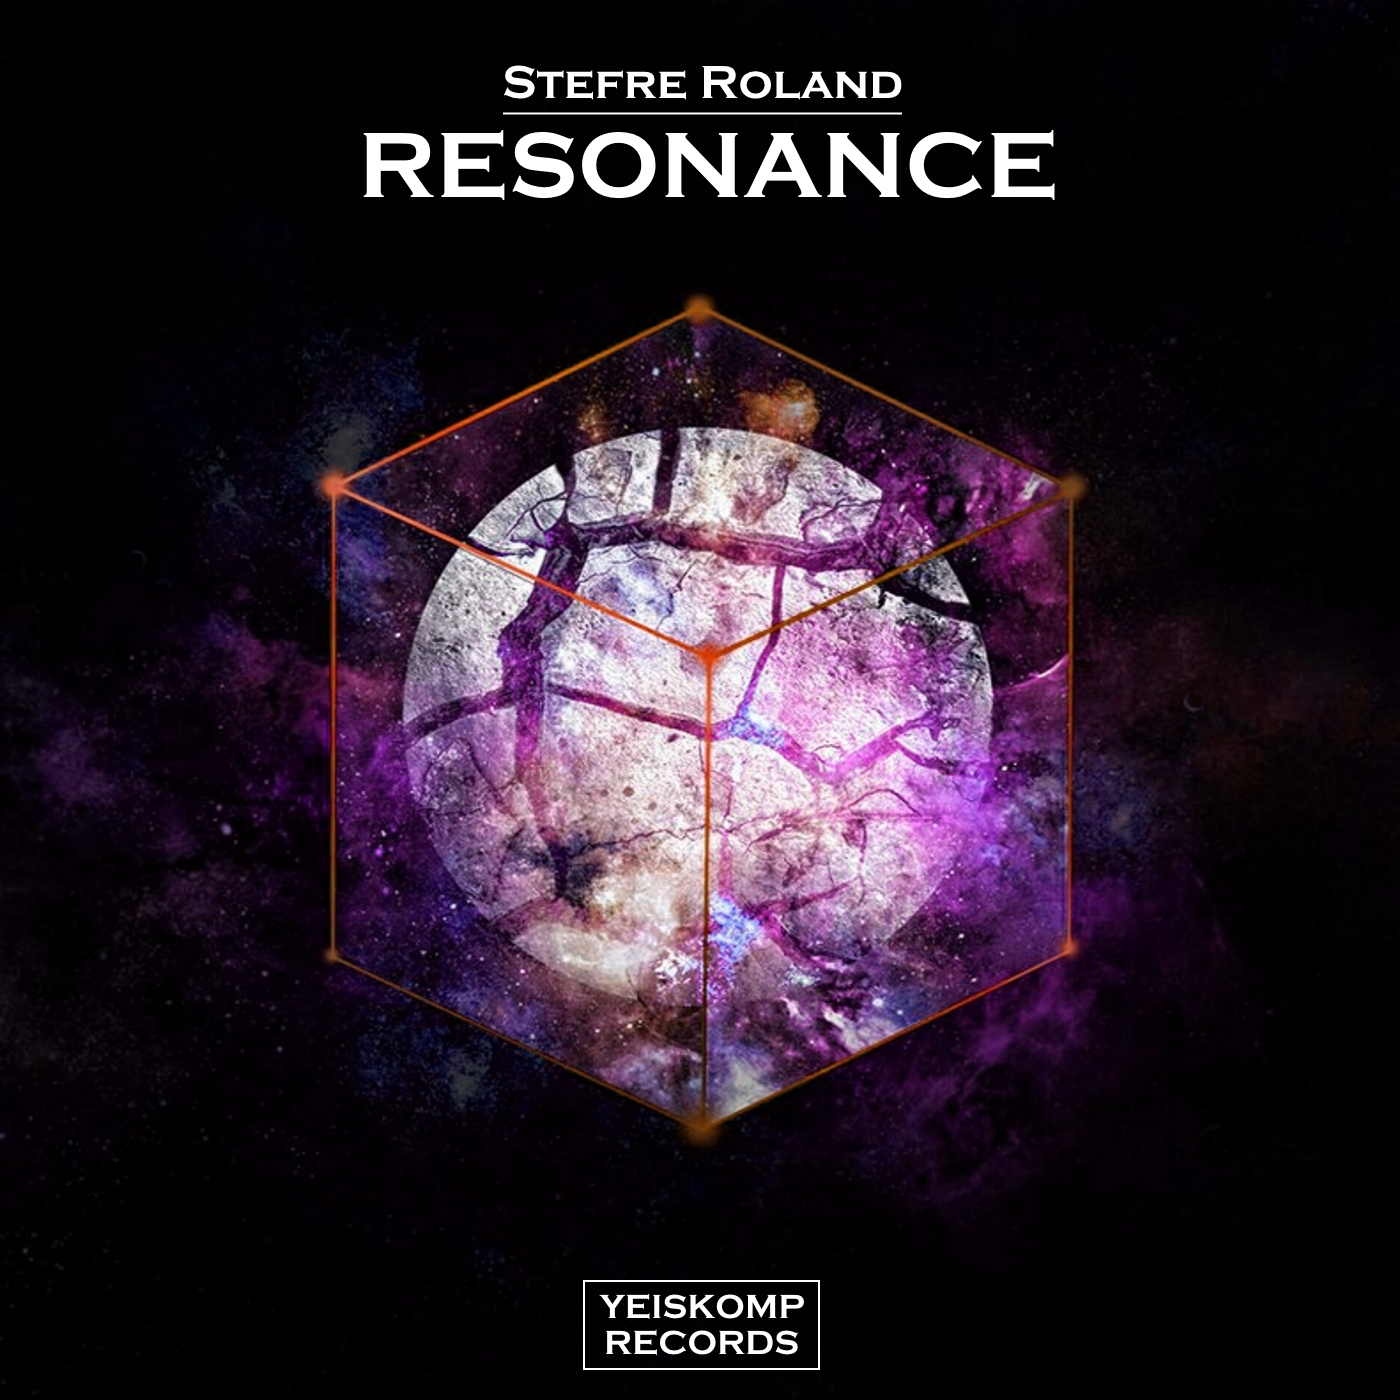 Stefre Roland - Resonance (Original Mix)